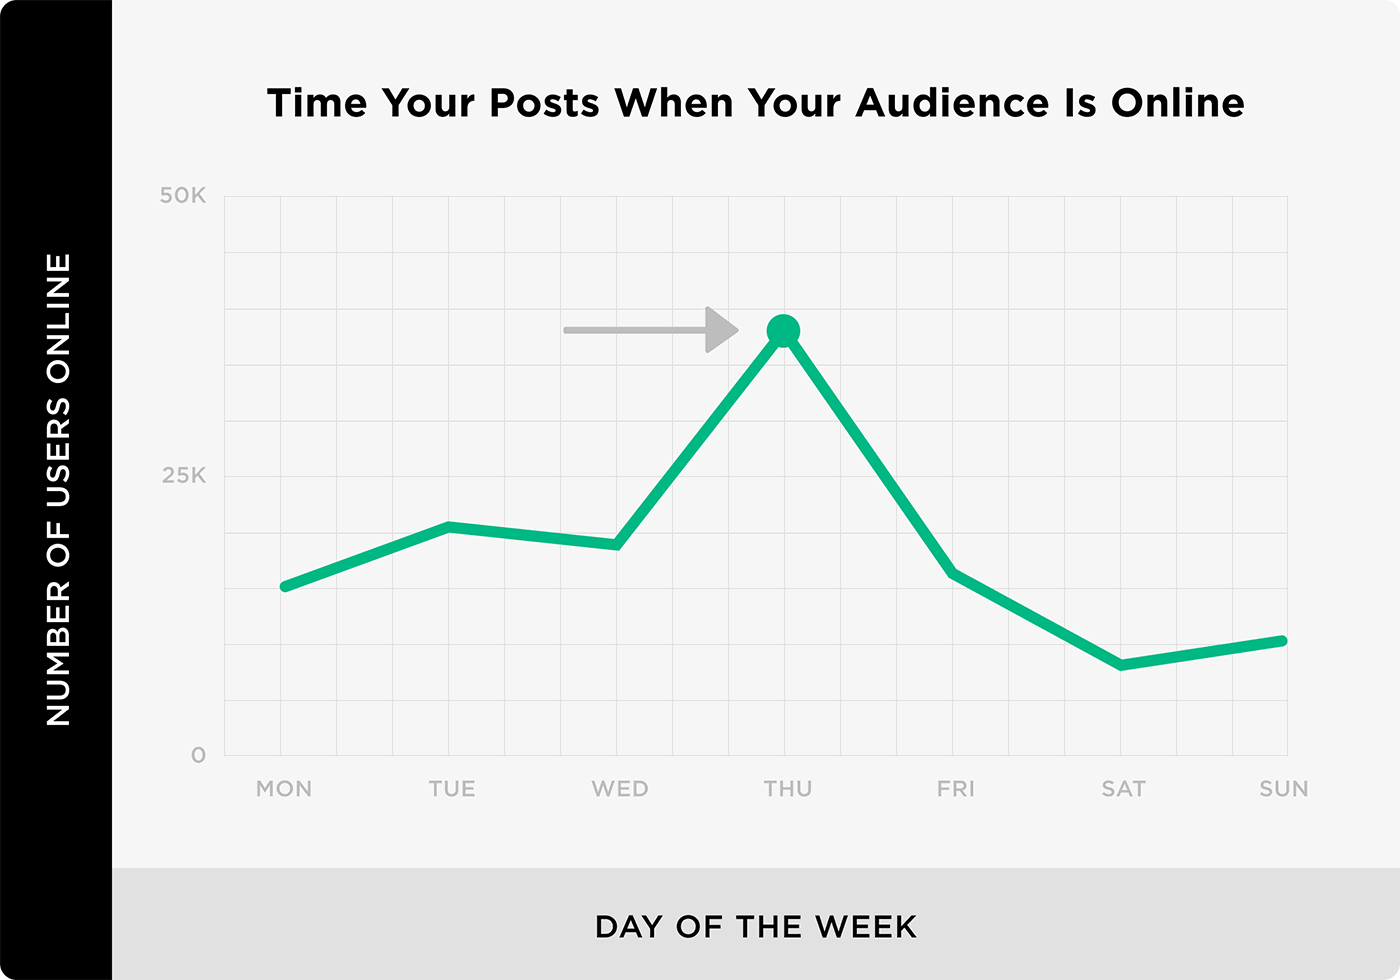 Time your posts when your audience is online